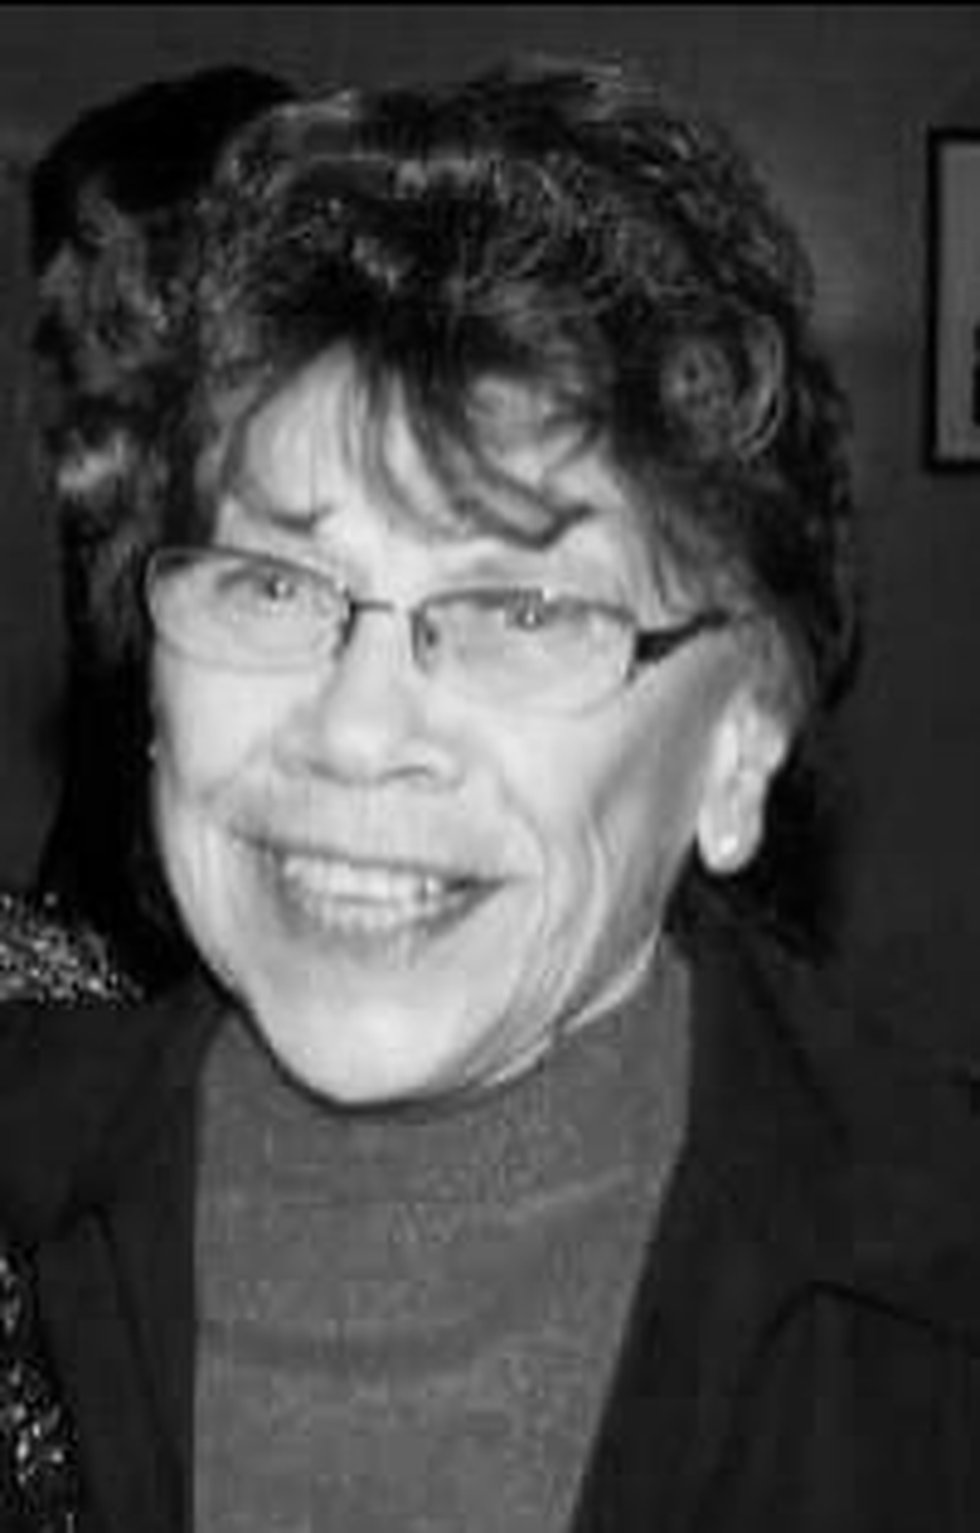 """Virginia R. """"Ginny"""" O'Hearn, age 84, of Gouverneur, passed away on Friday, September 3, 2021 at..."""